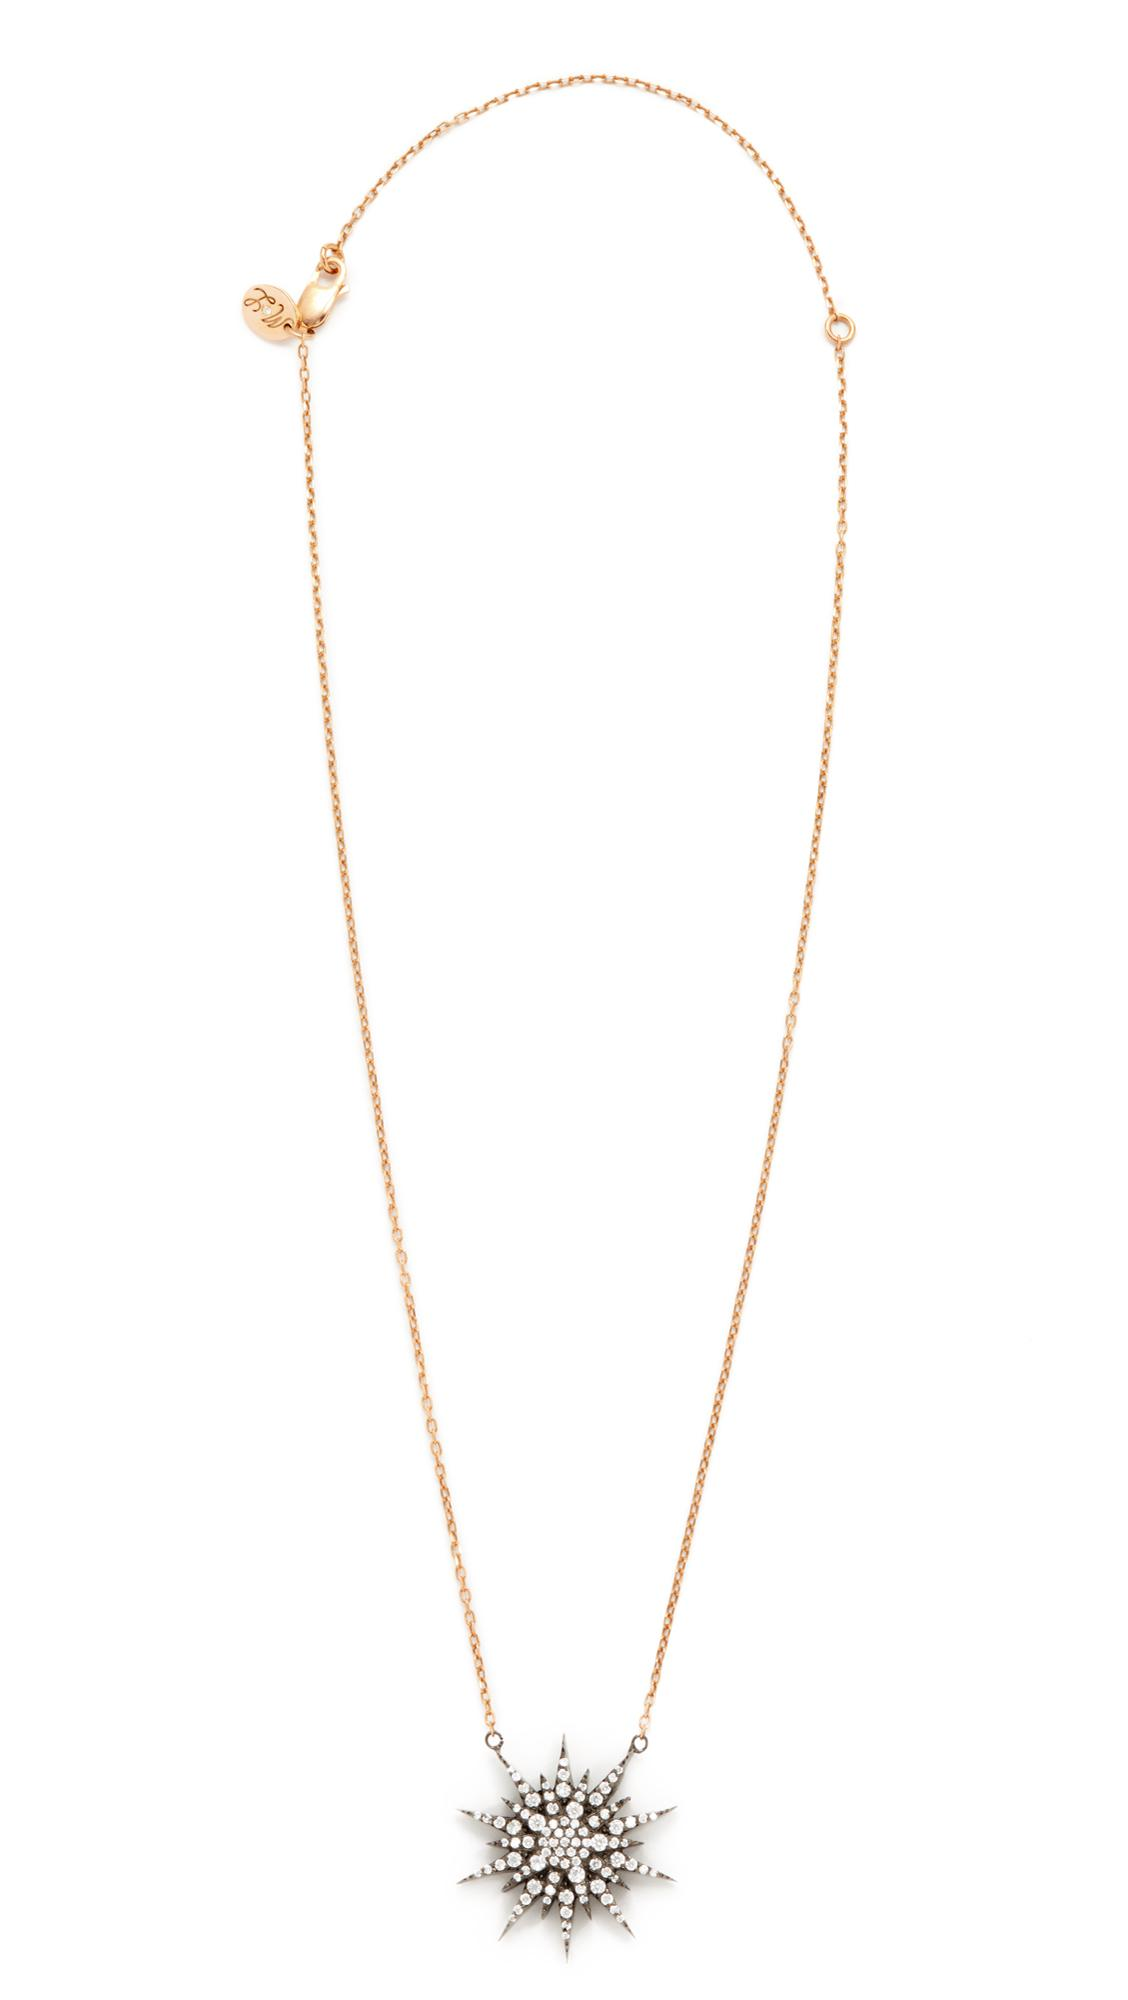 Maha Lozi Peas In A Pod necklace - Black rh6HDDUc6